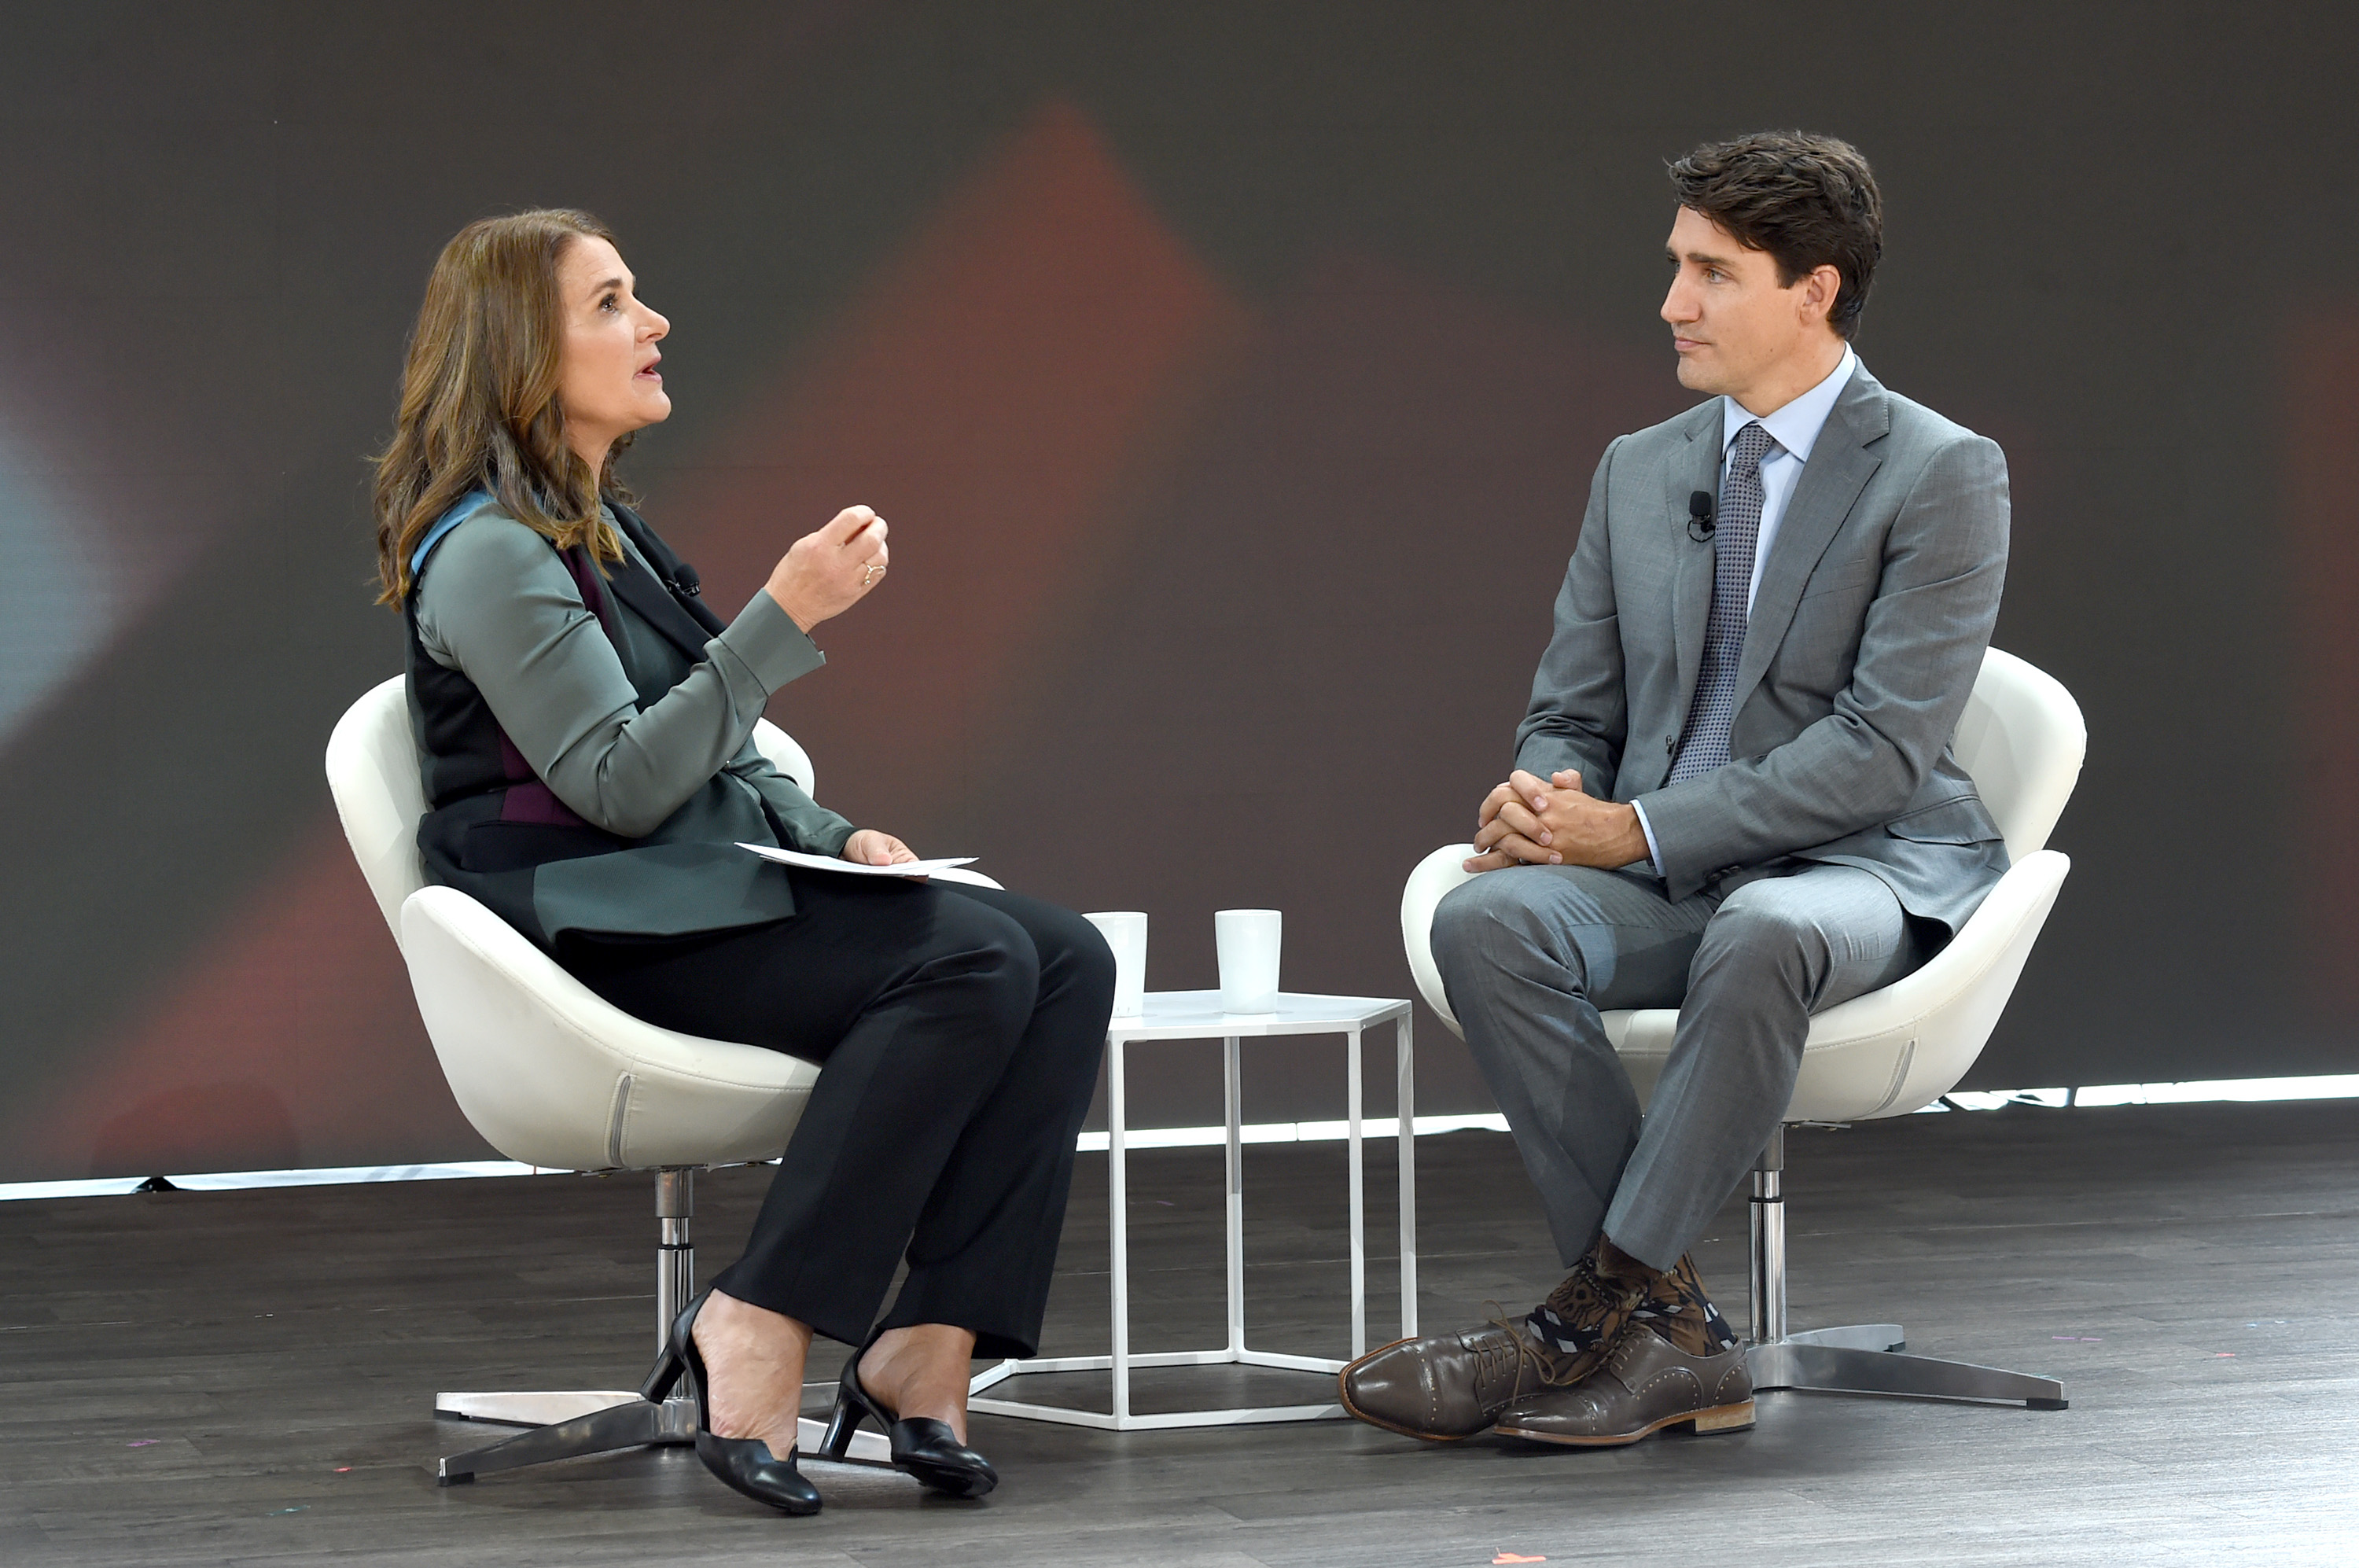 Bill & Melinda Gates Foundation co-founder Melinda Gates and Canadian Prime Minister Justin Trudeau speak at Goalkeepers 2017, at Jazz at Lincoln Center on September 20, 2017 in New York City.